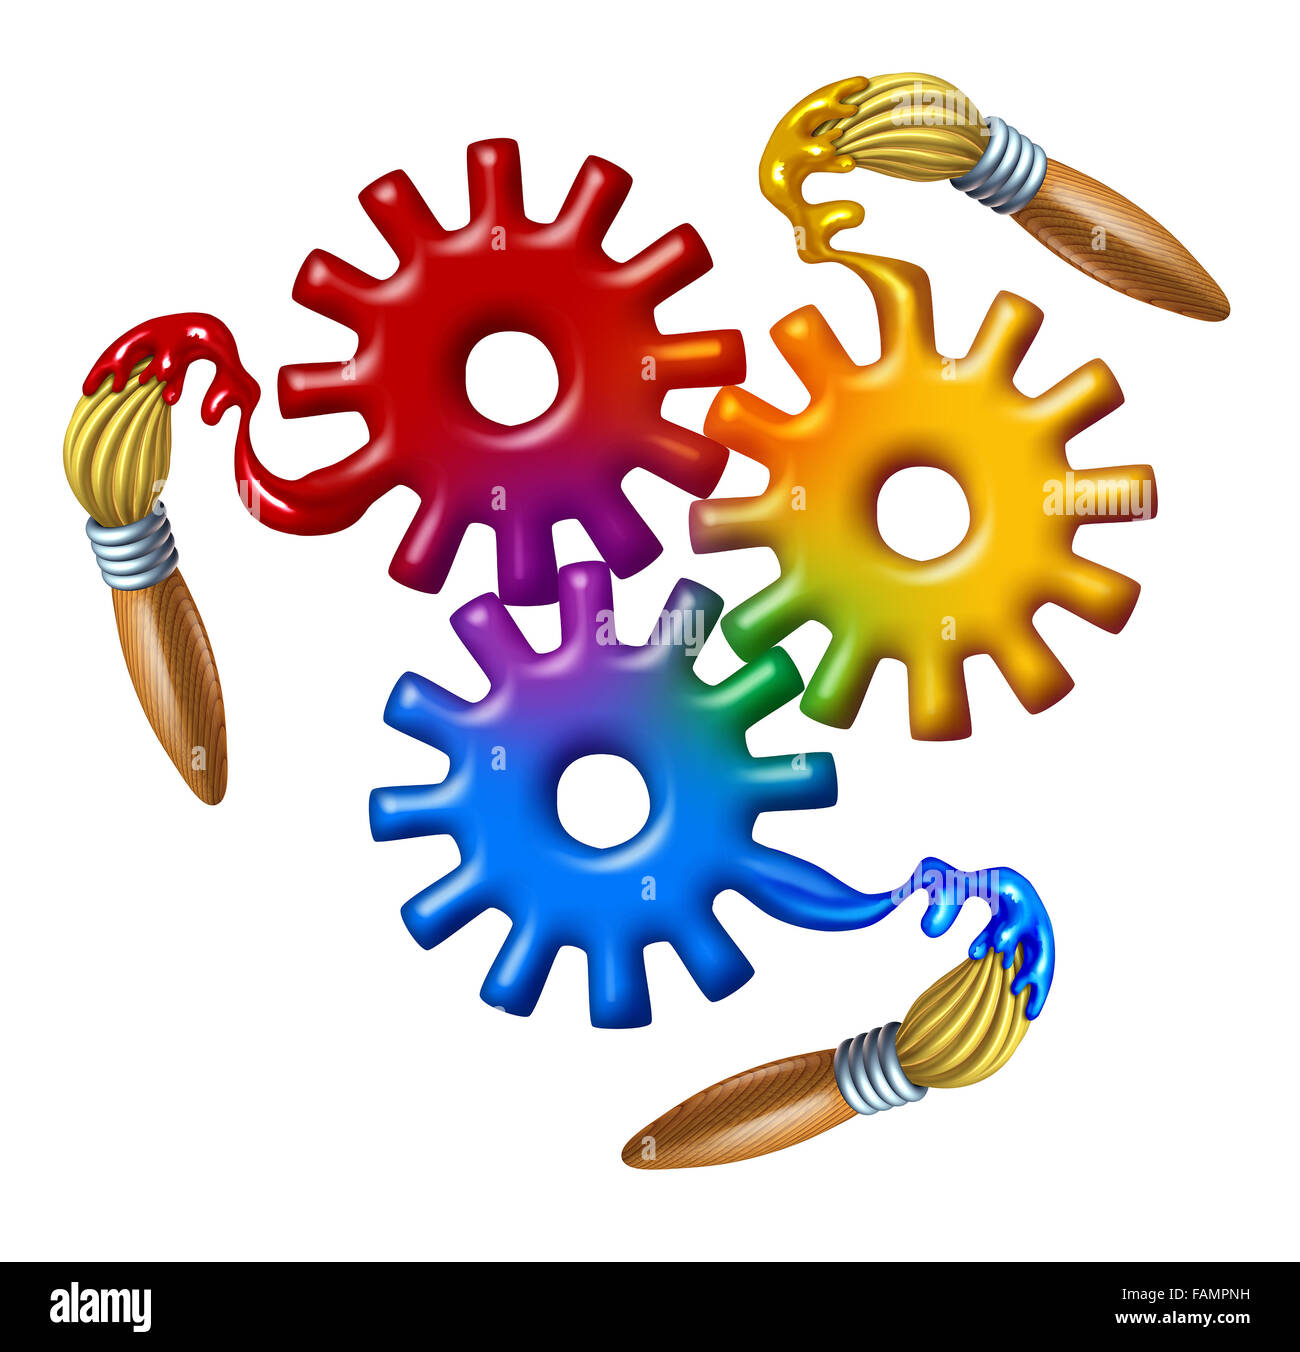 Art business symbol and color theory icon as a group of gears and cog wheels made of wet primary color paint with - Stock Image